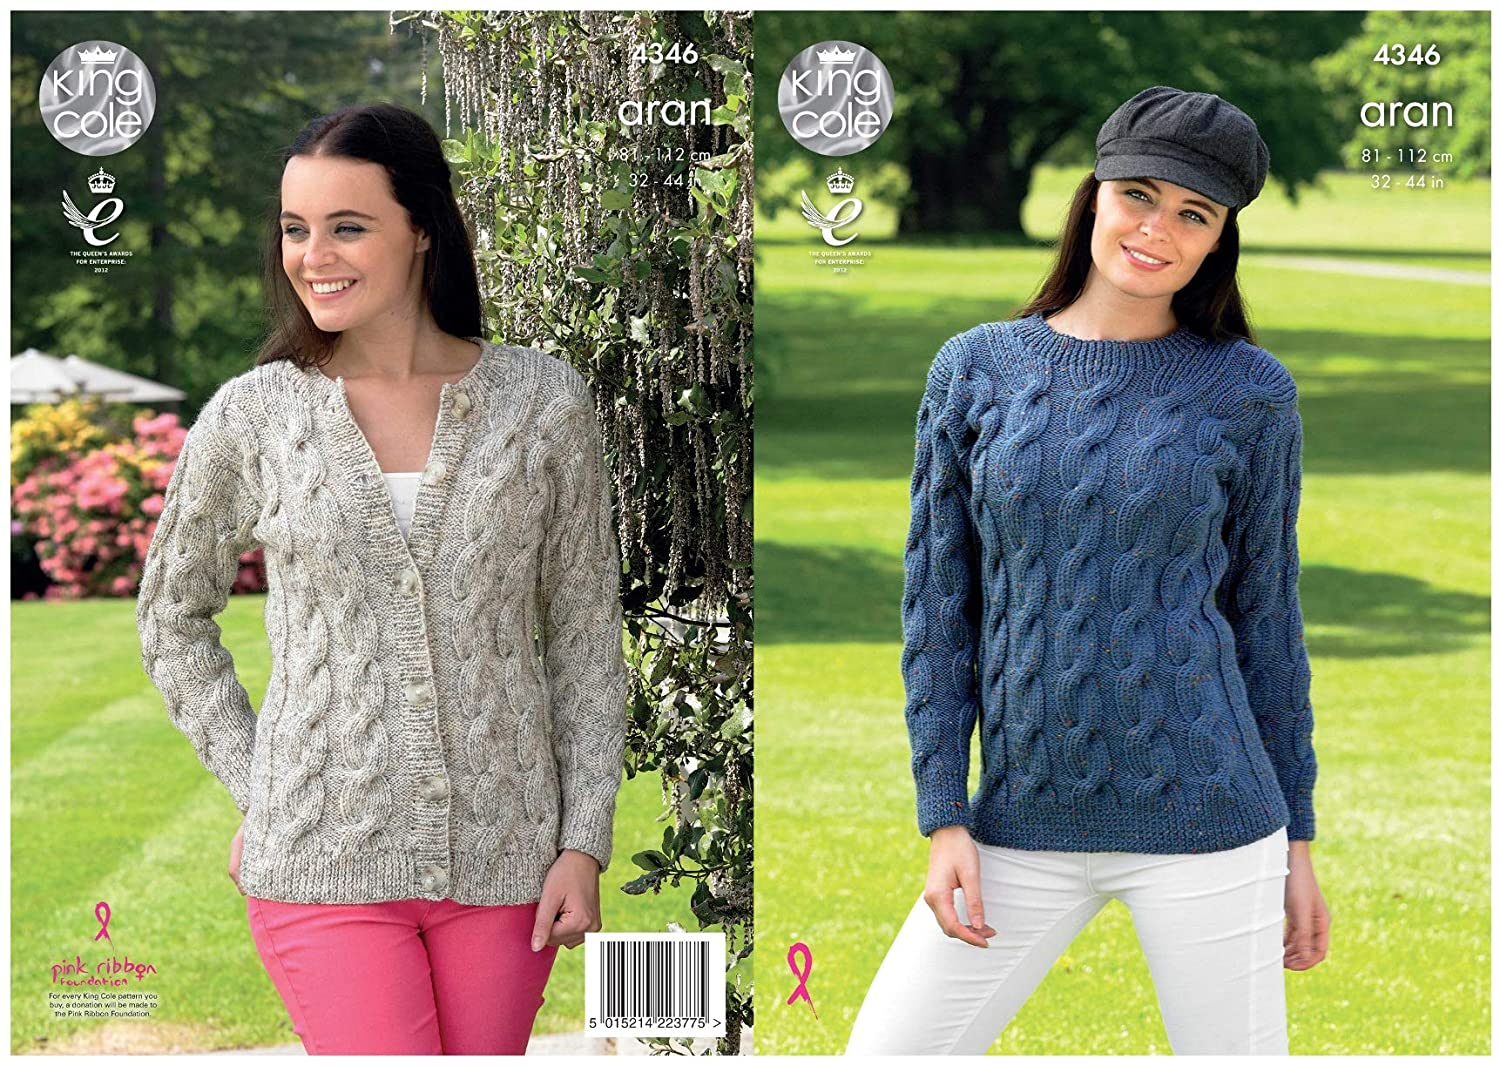 be684c60d Amazon.com  King Cole Ladies Knitting Pattern Womens Cable Detail Sweater    Cardigan Fashion Aran (4346)  Home   Kitchen